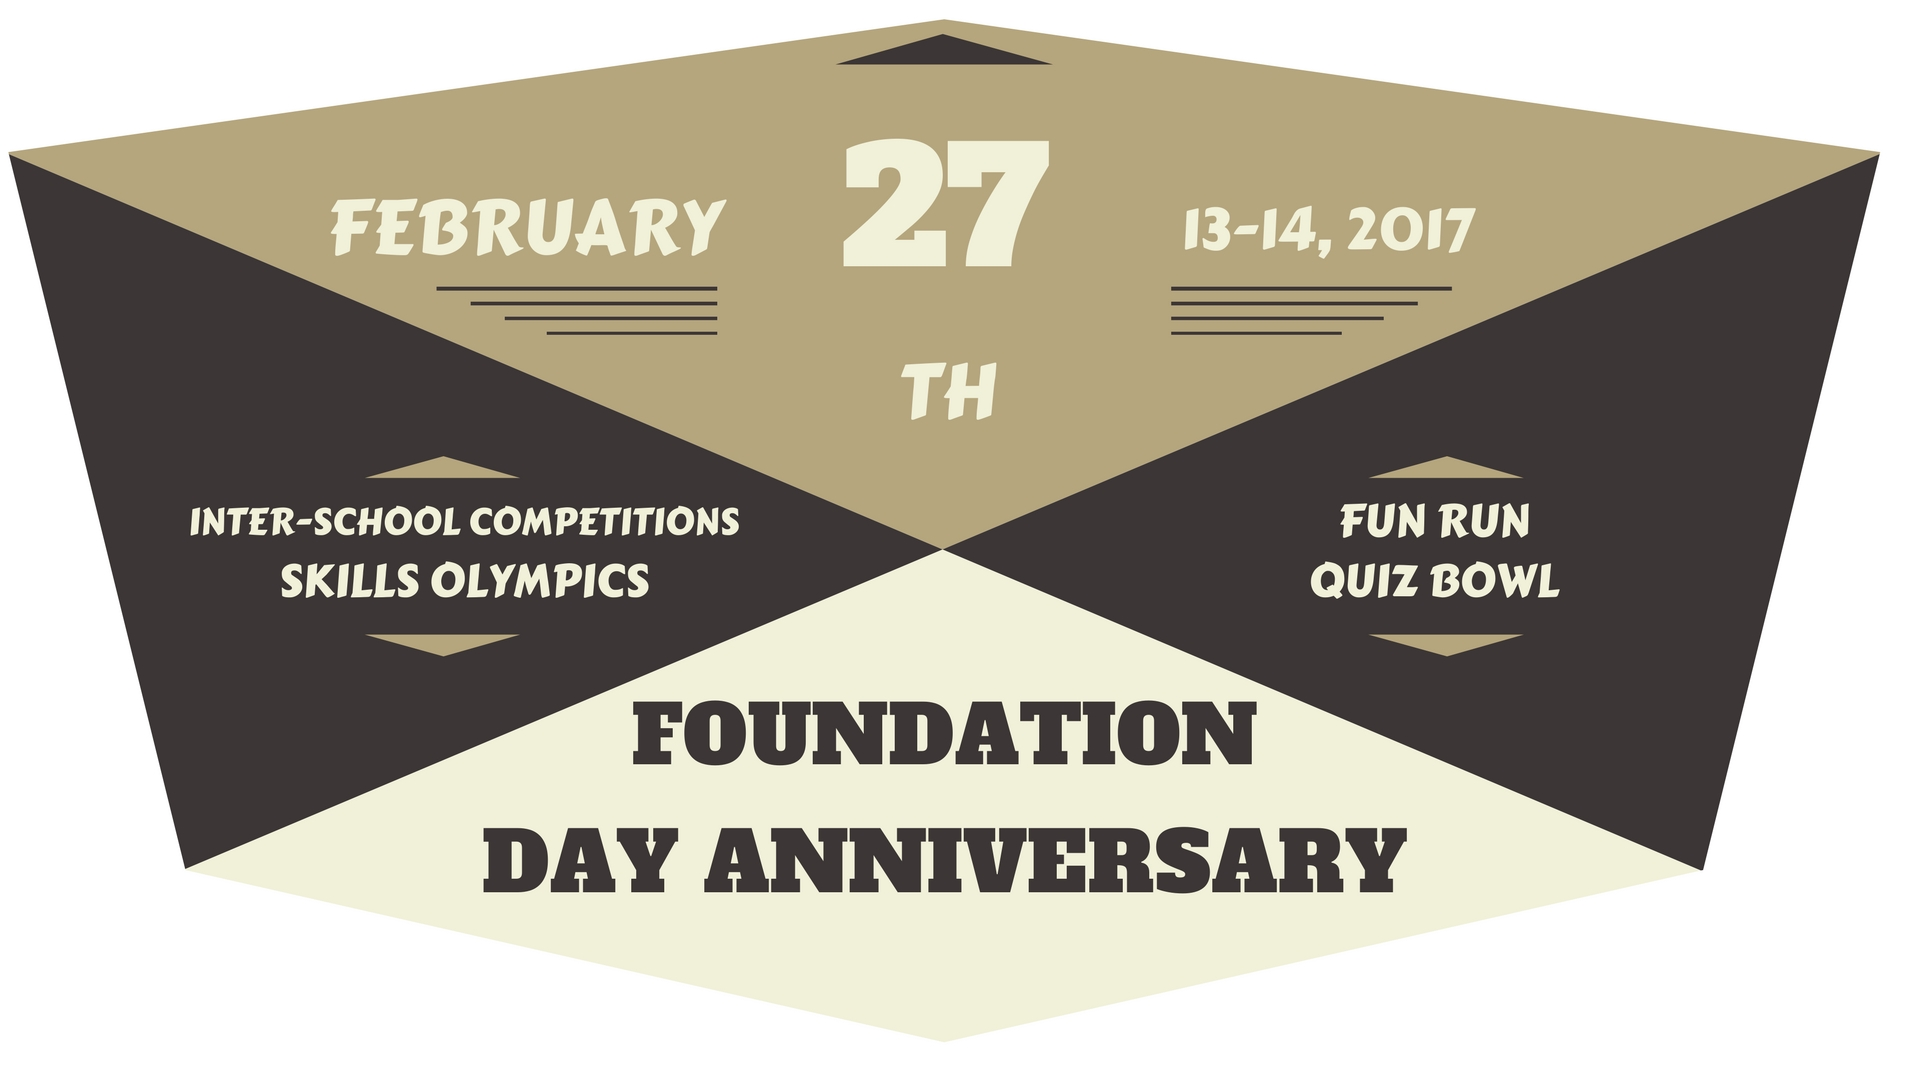 FOUNDATION DAY (1)